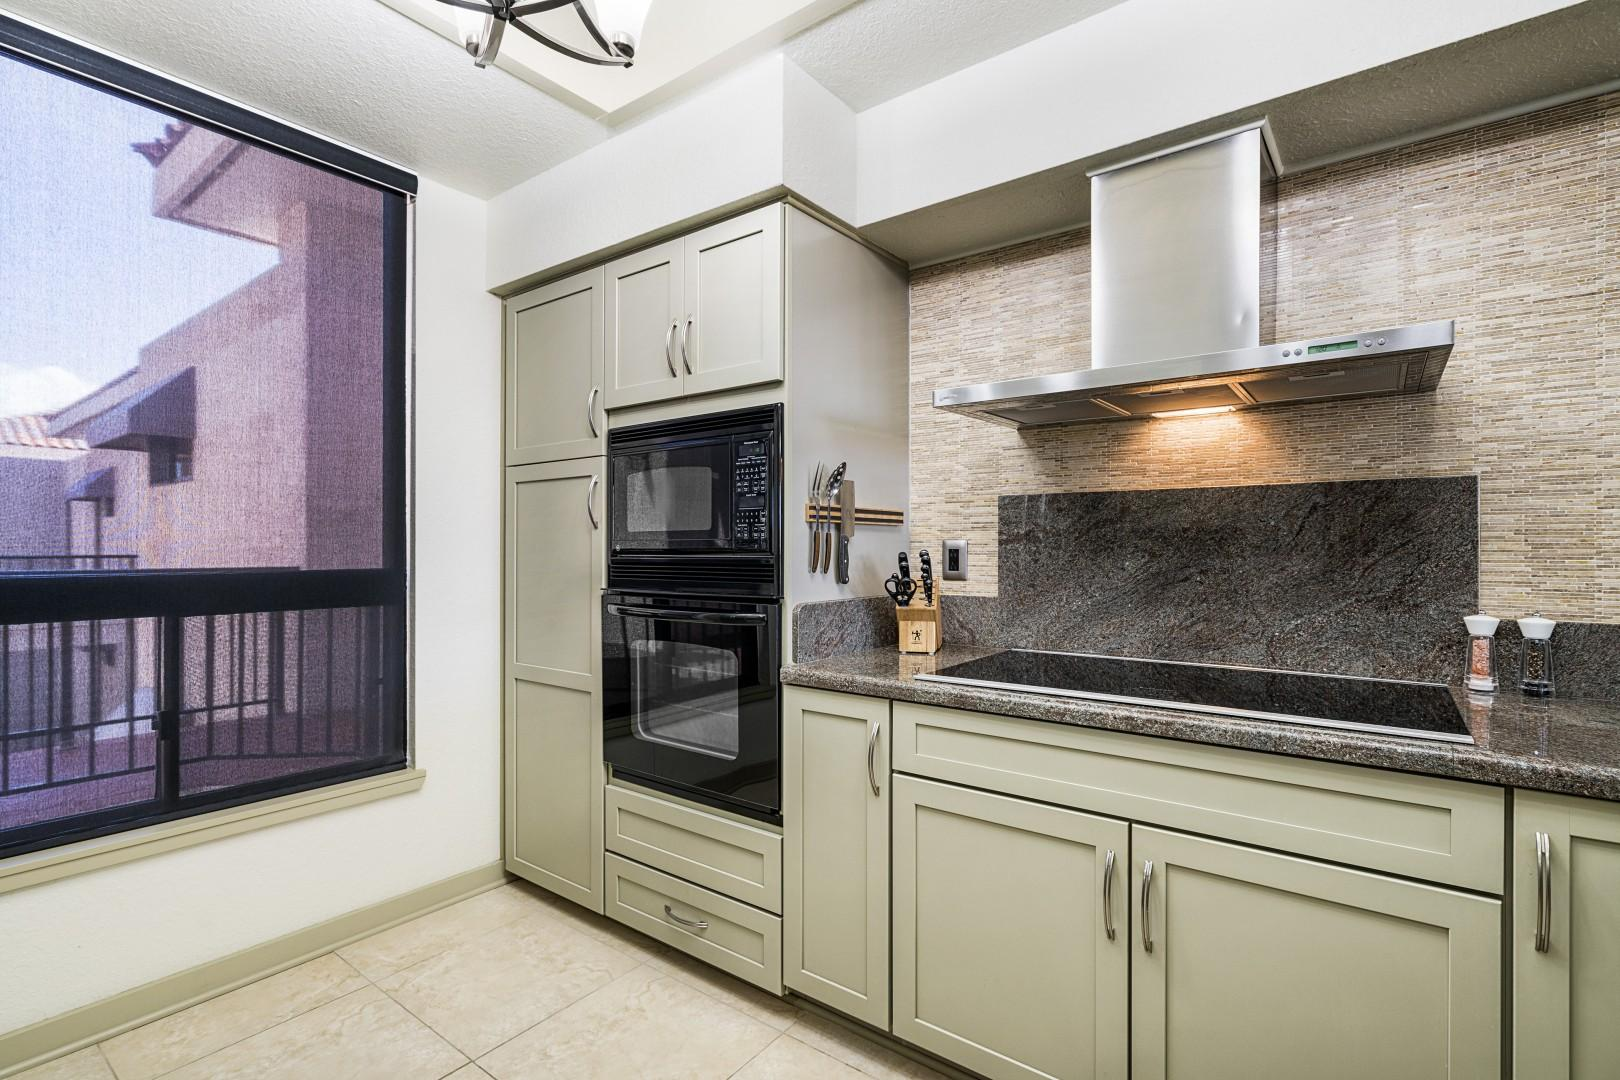 Spacious kitchen with all the essentials to cook your favorite meals!